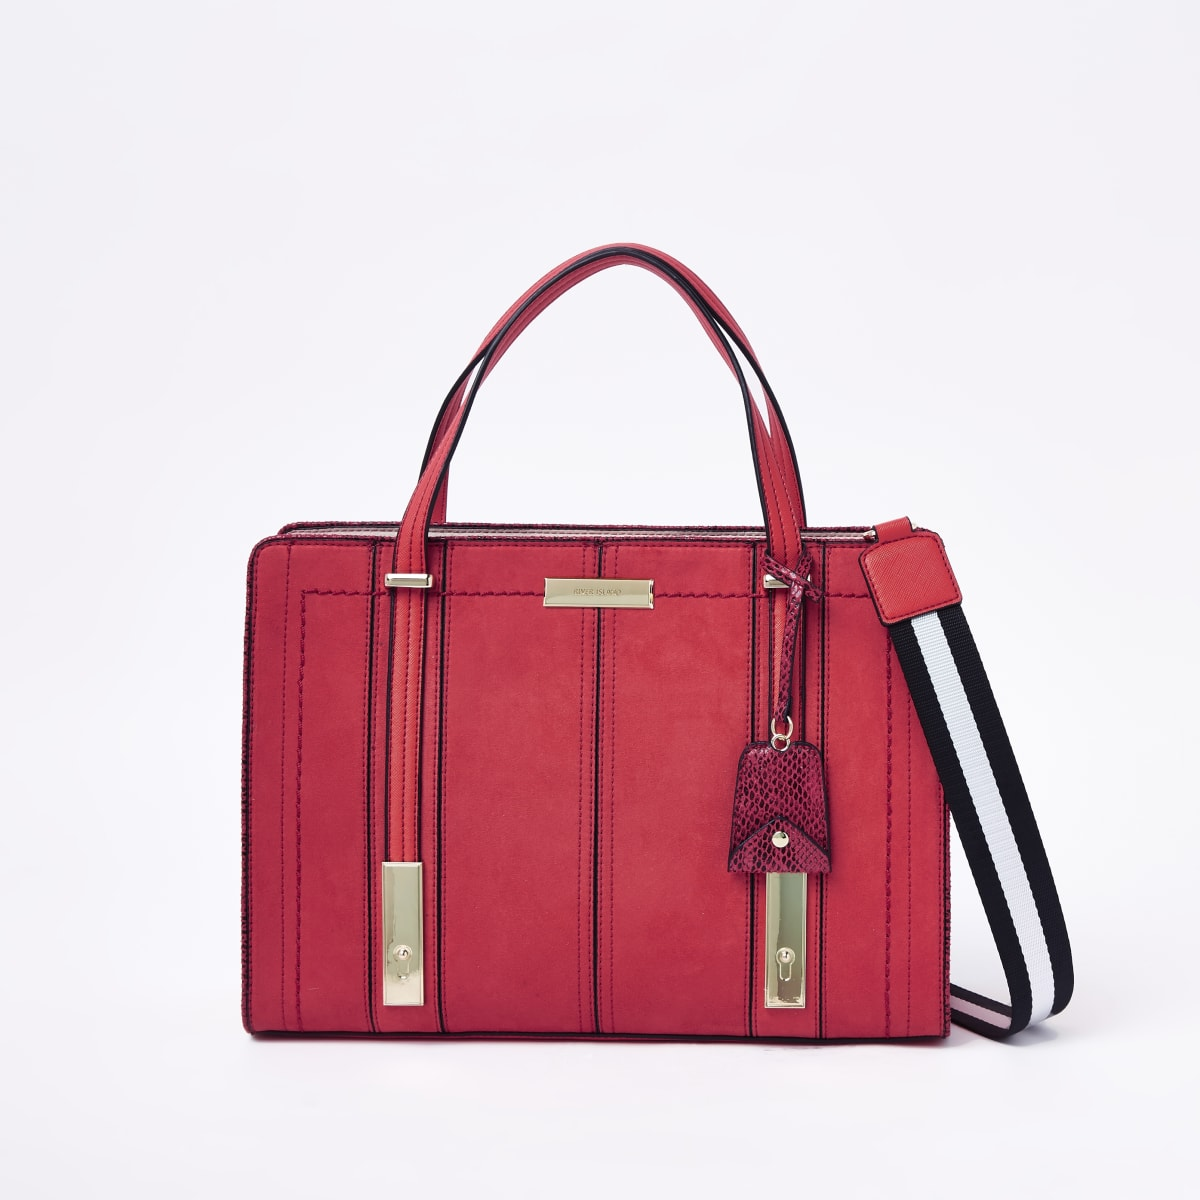 Red faux leather boxy tote bag